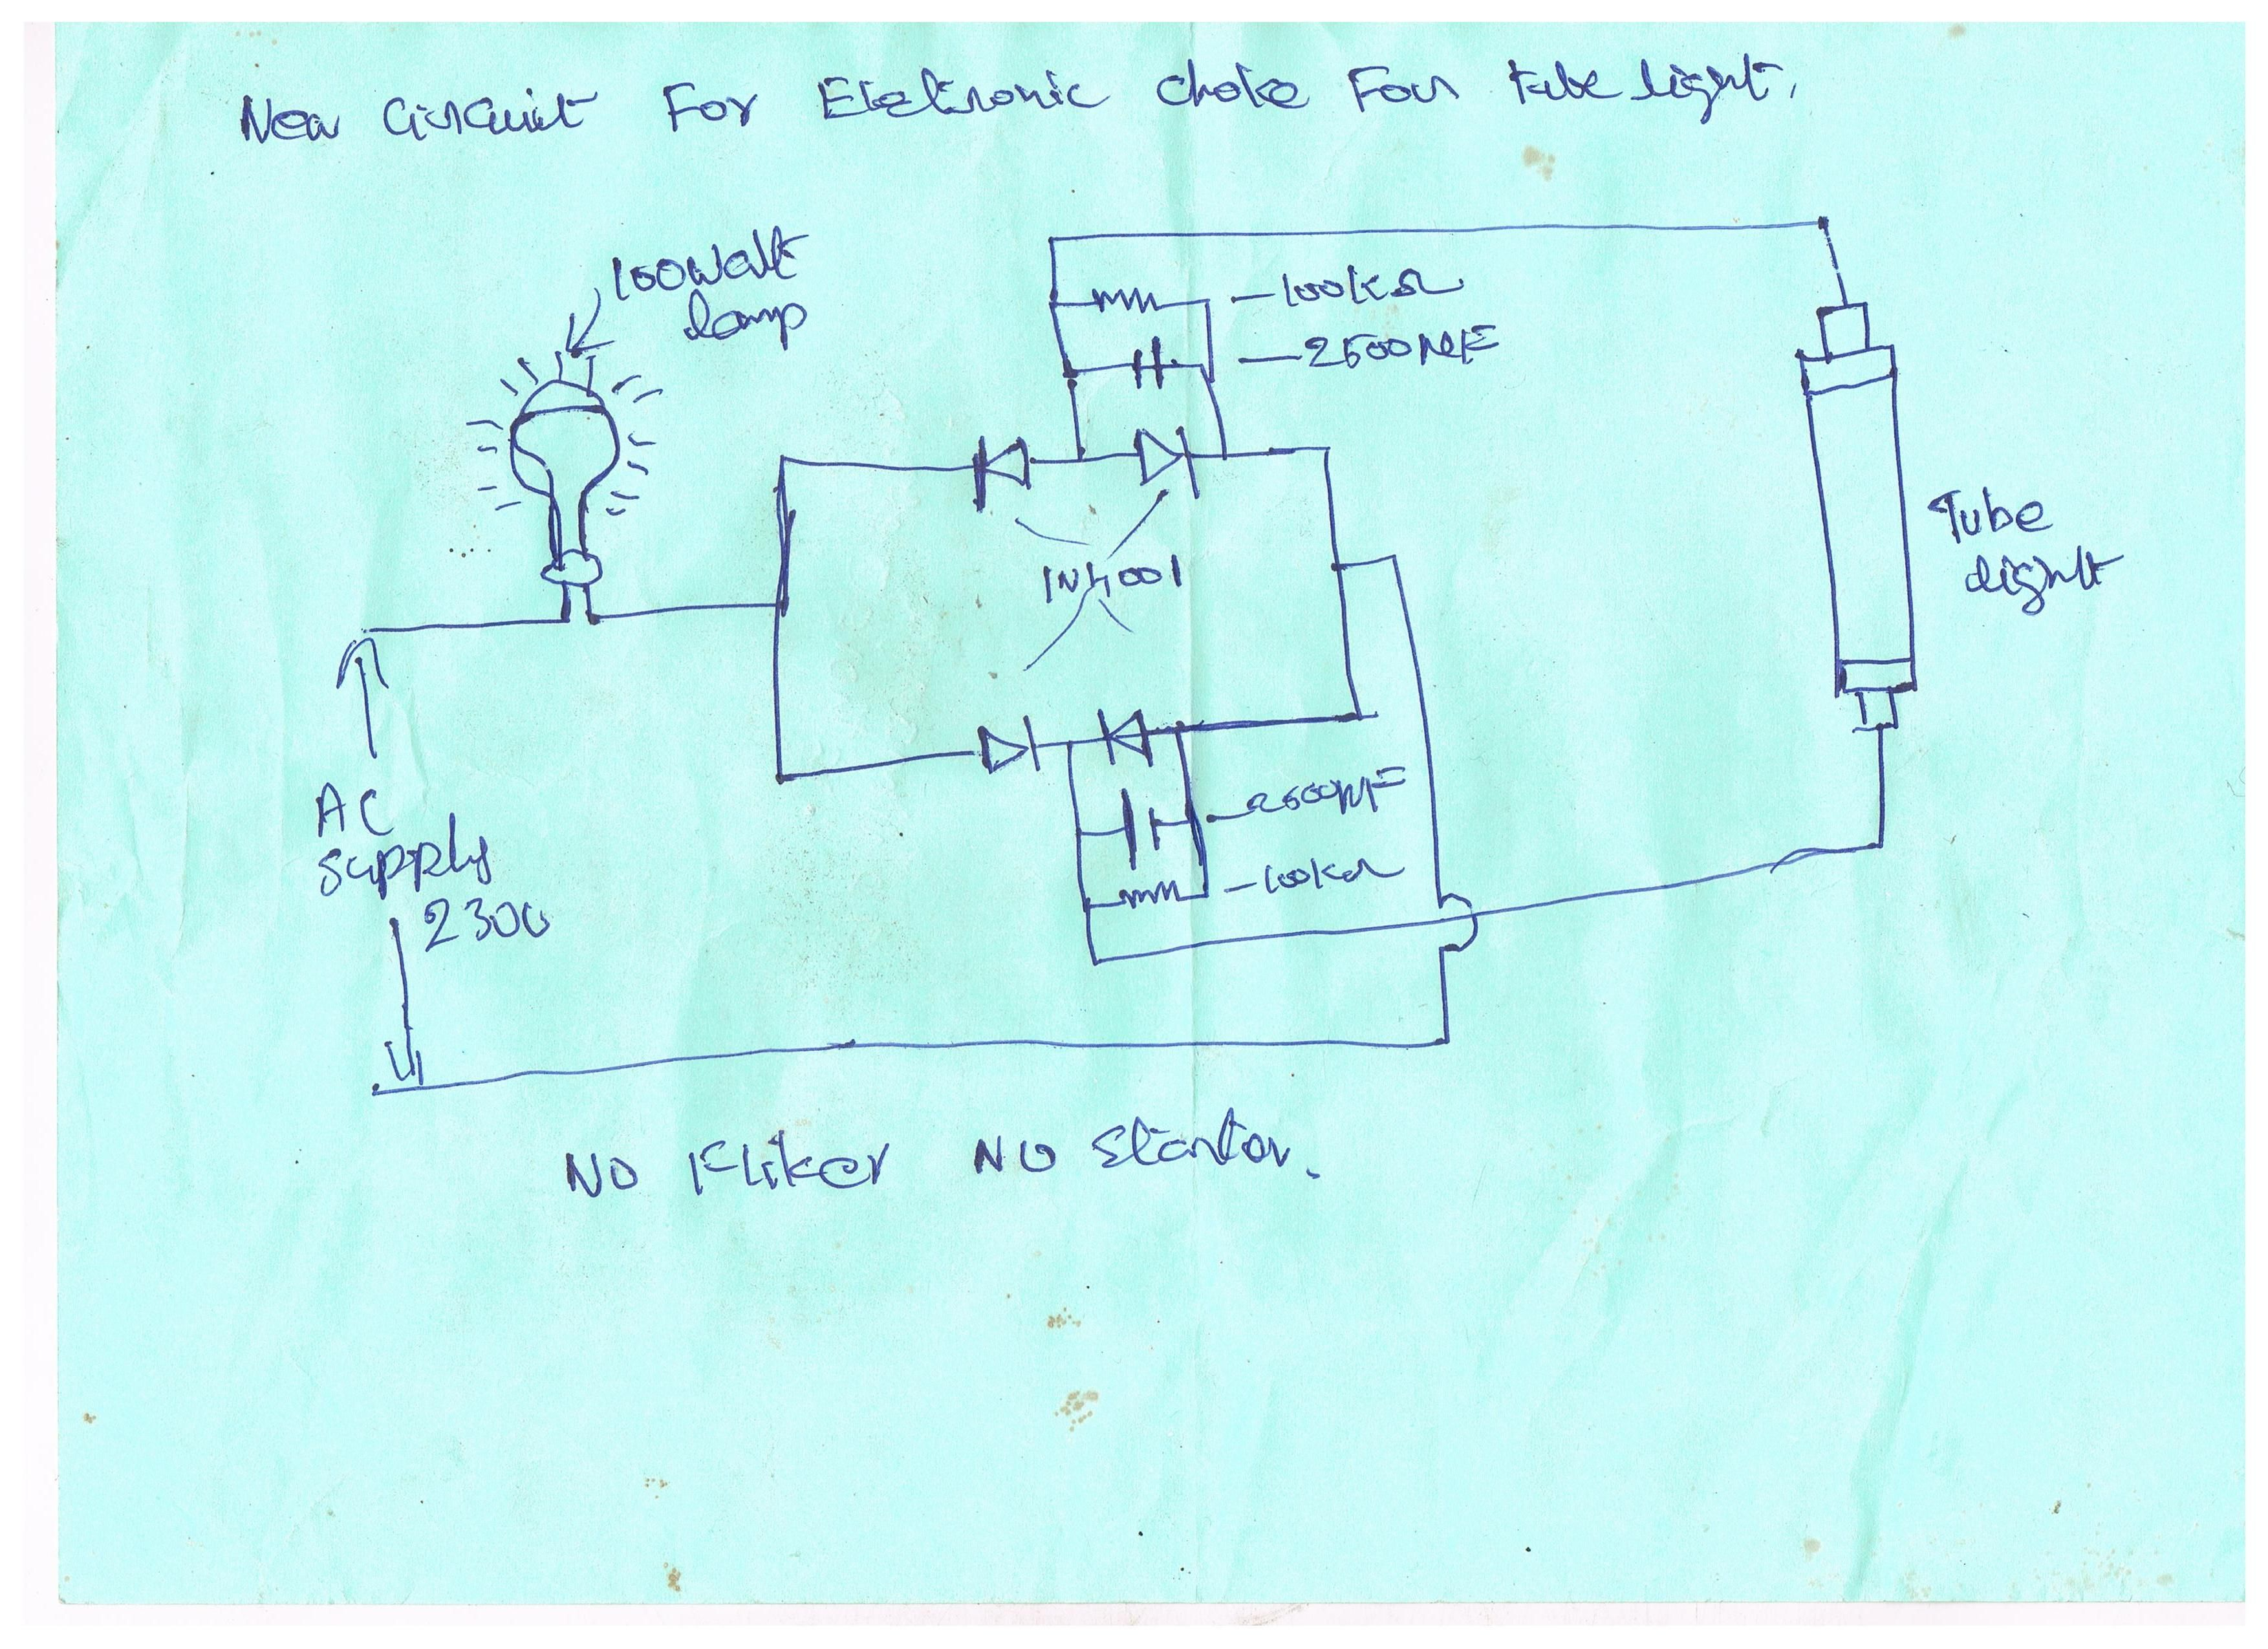 medium resolution of new circuit for electronic choke for tubelight